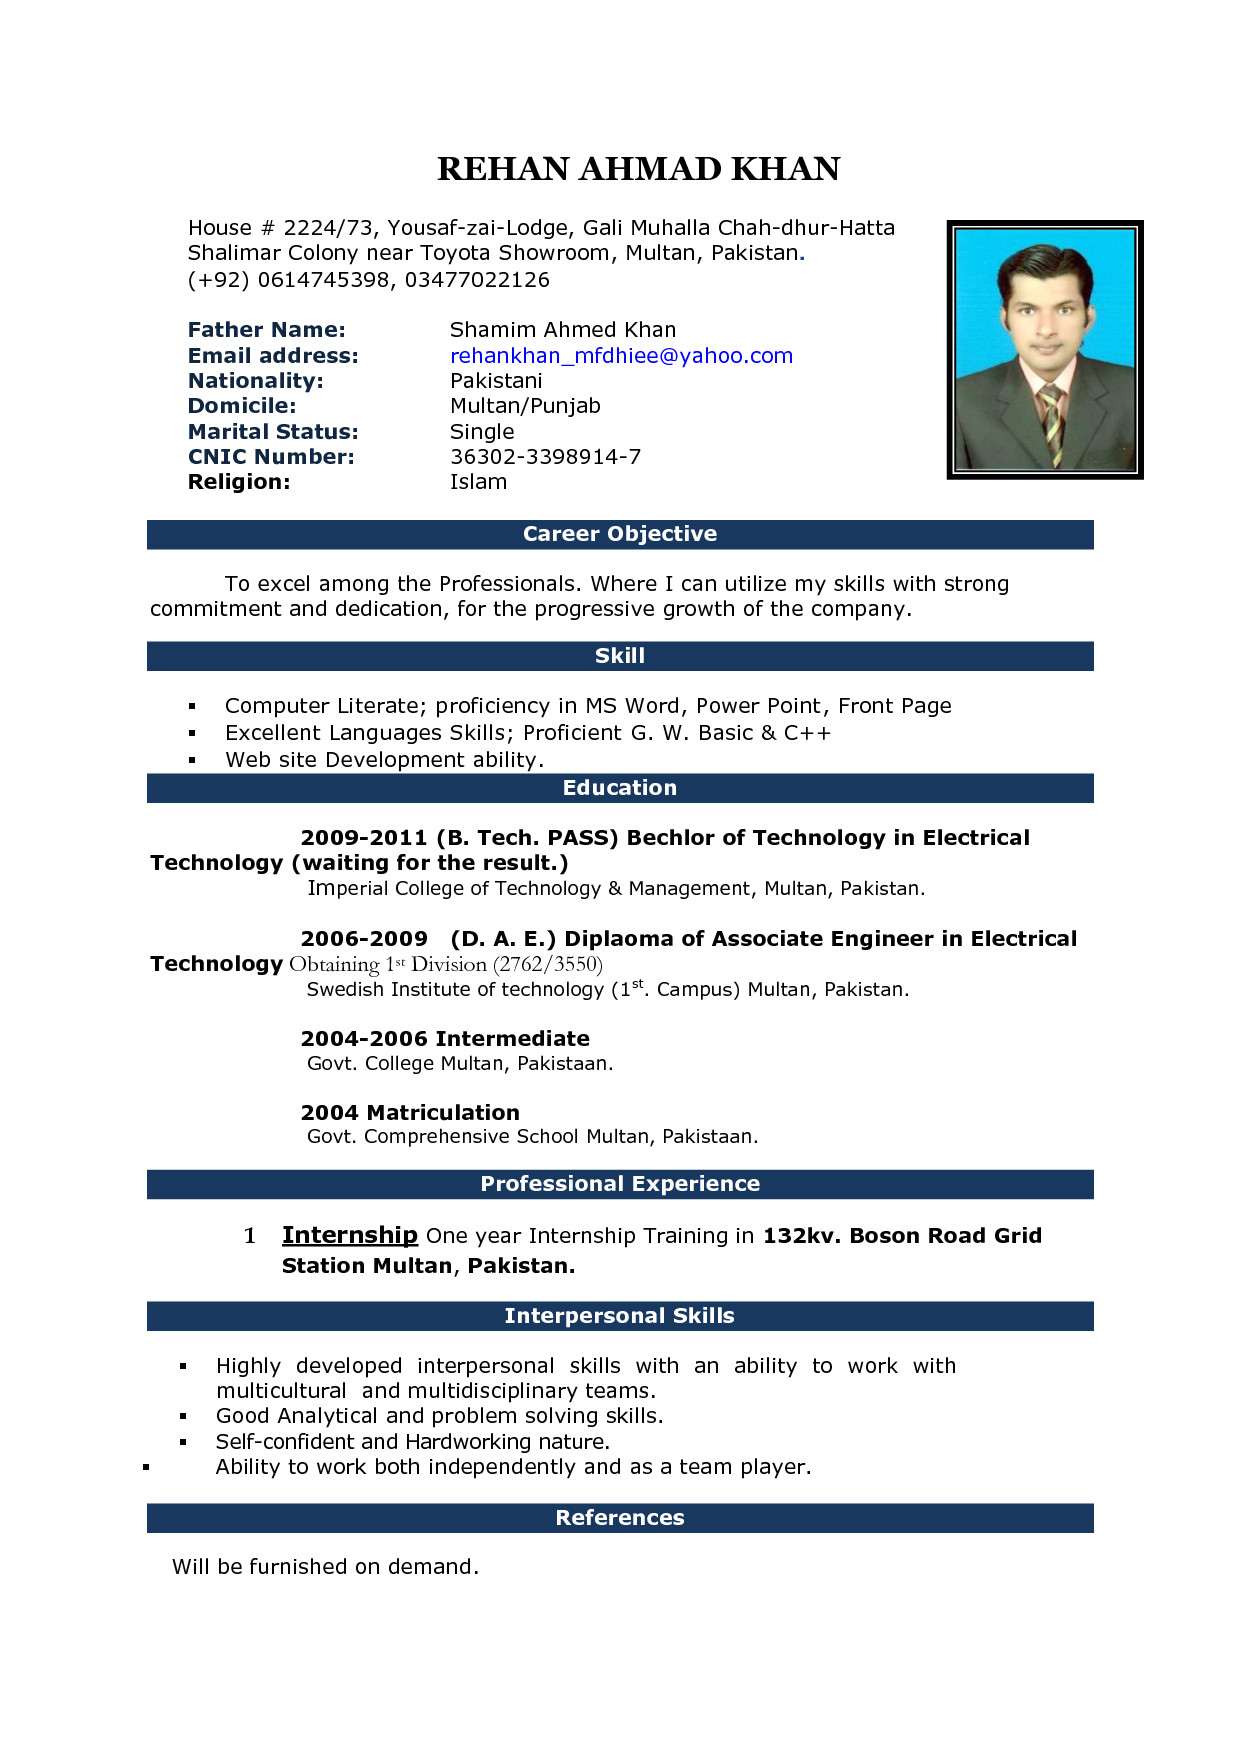 Resume format In Word 2007 Image Result for Cv format In Ms Word 2007 Free Download